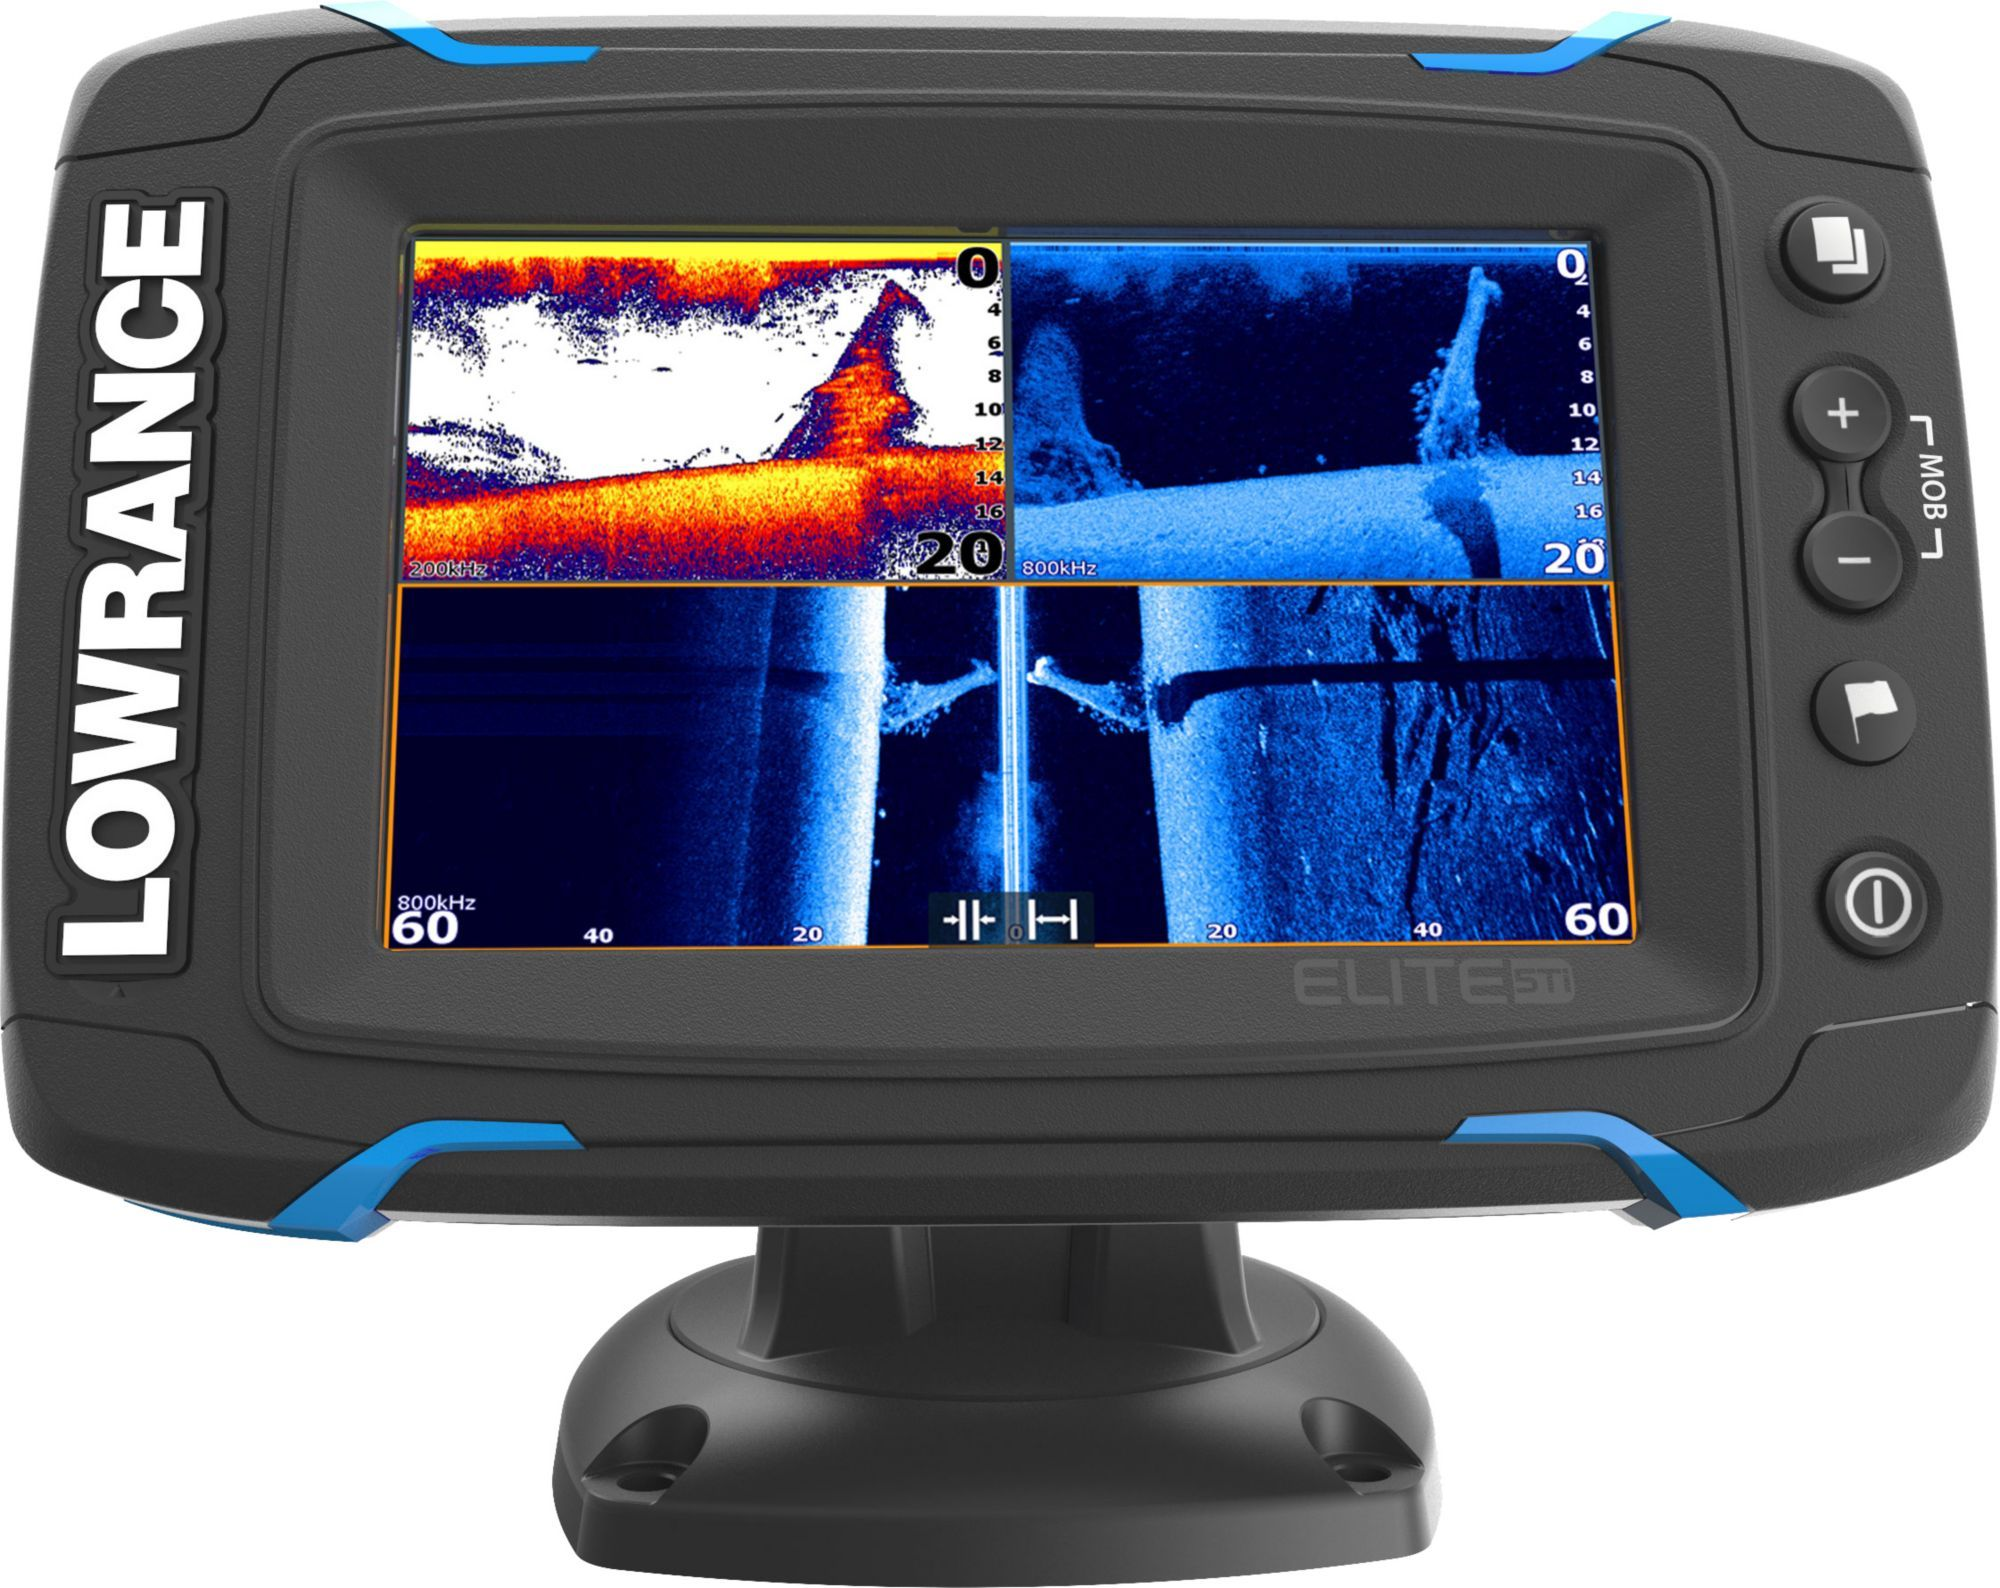 Lowrance Elite 5 Ti Gps Fish Finder With Mid High Totalscan 000 12423 001 Fish Finder Electronics Display